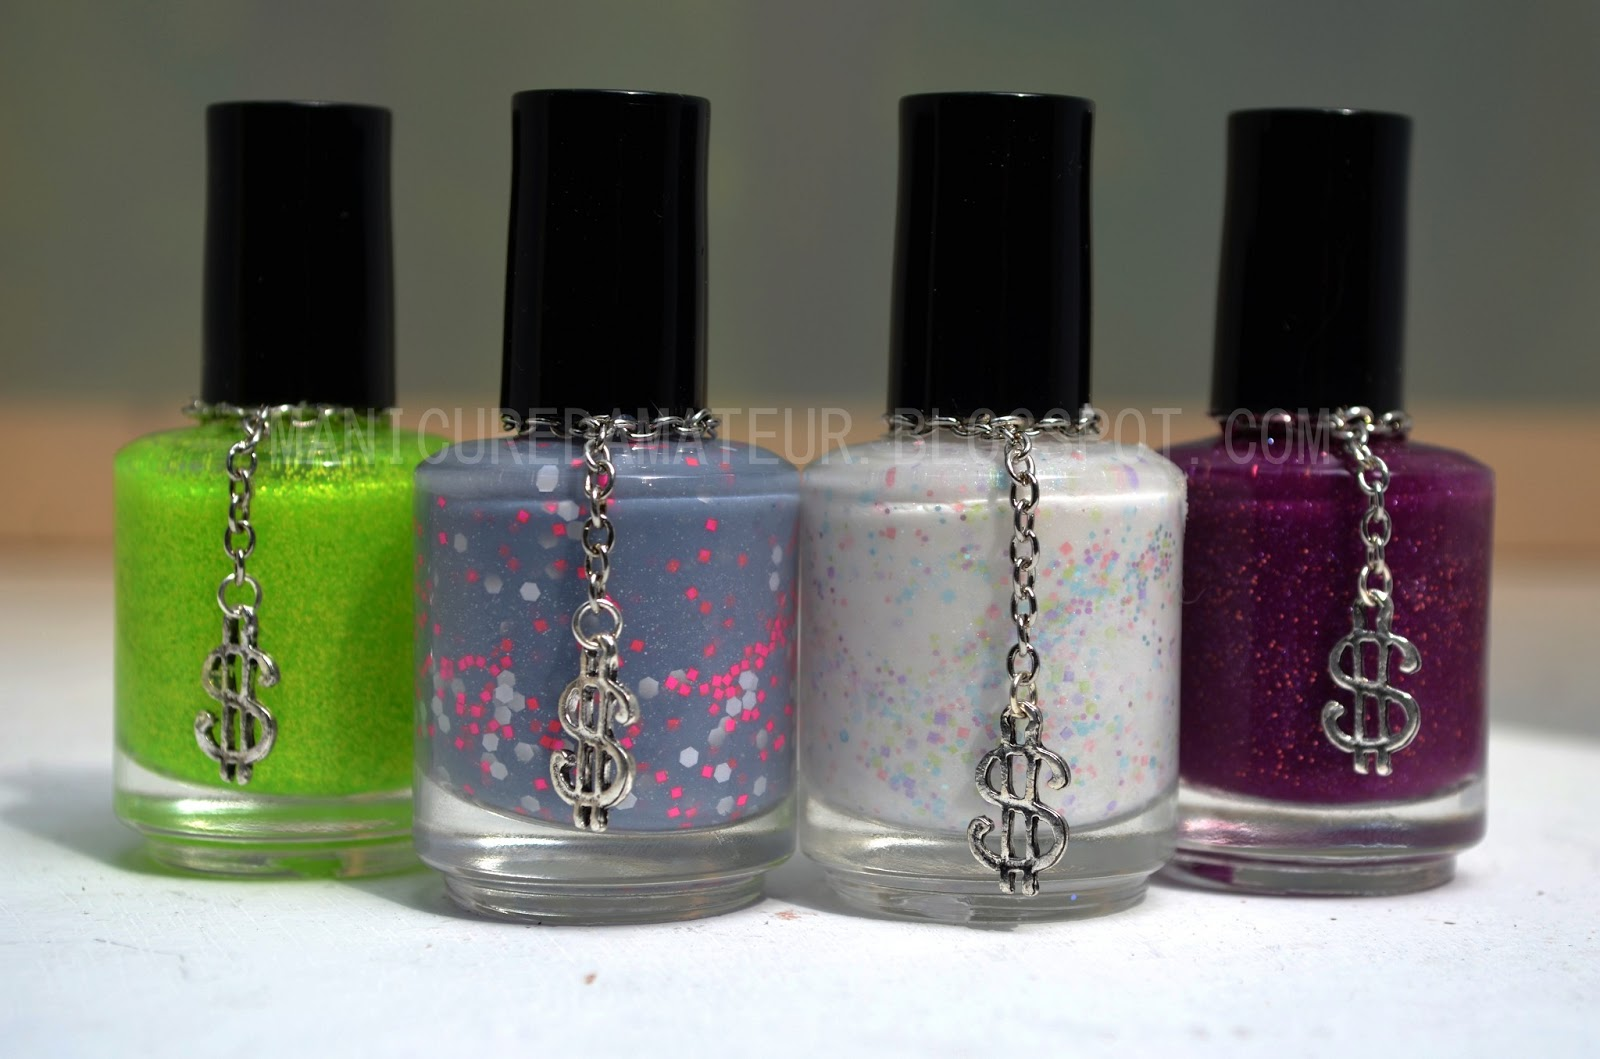 The manicured amateur may 2013 want flossy lacquers for yourself solutioingenieria Choice Image